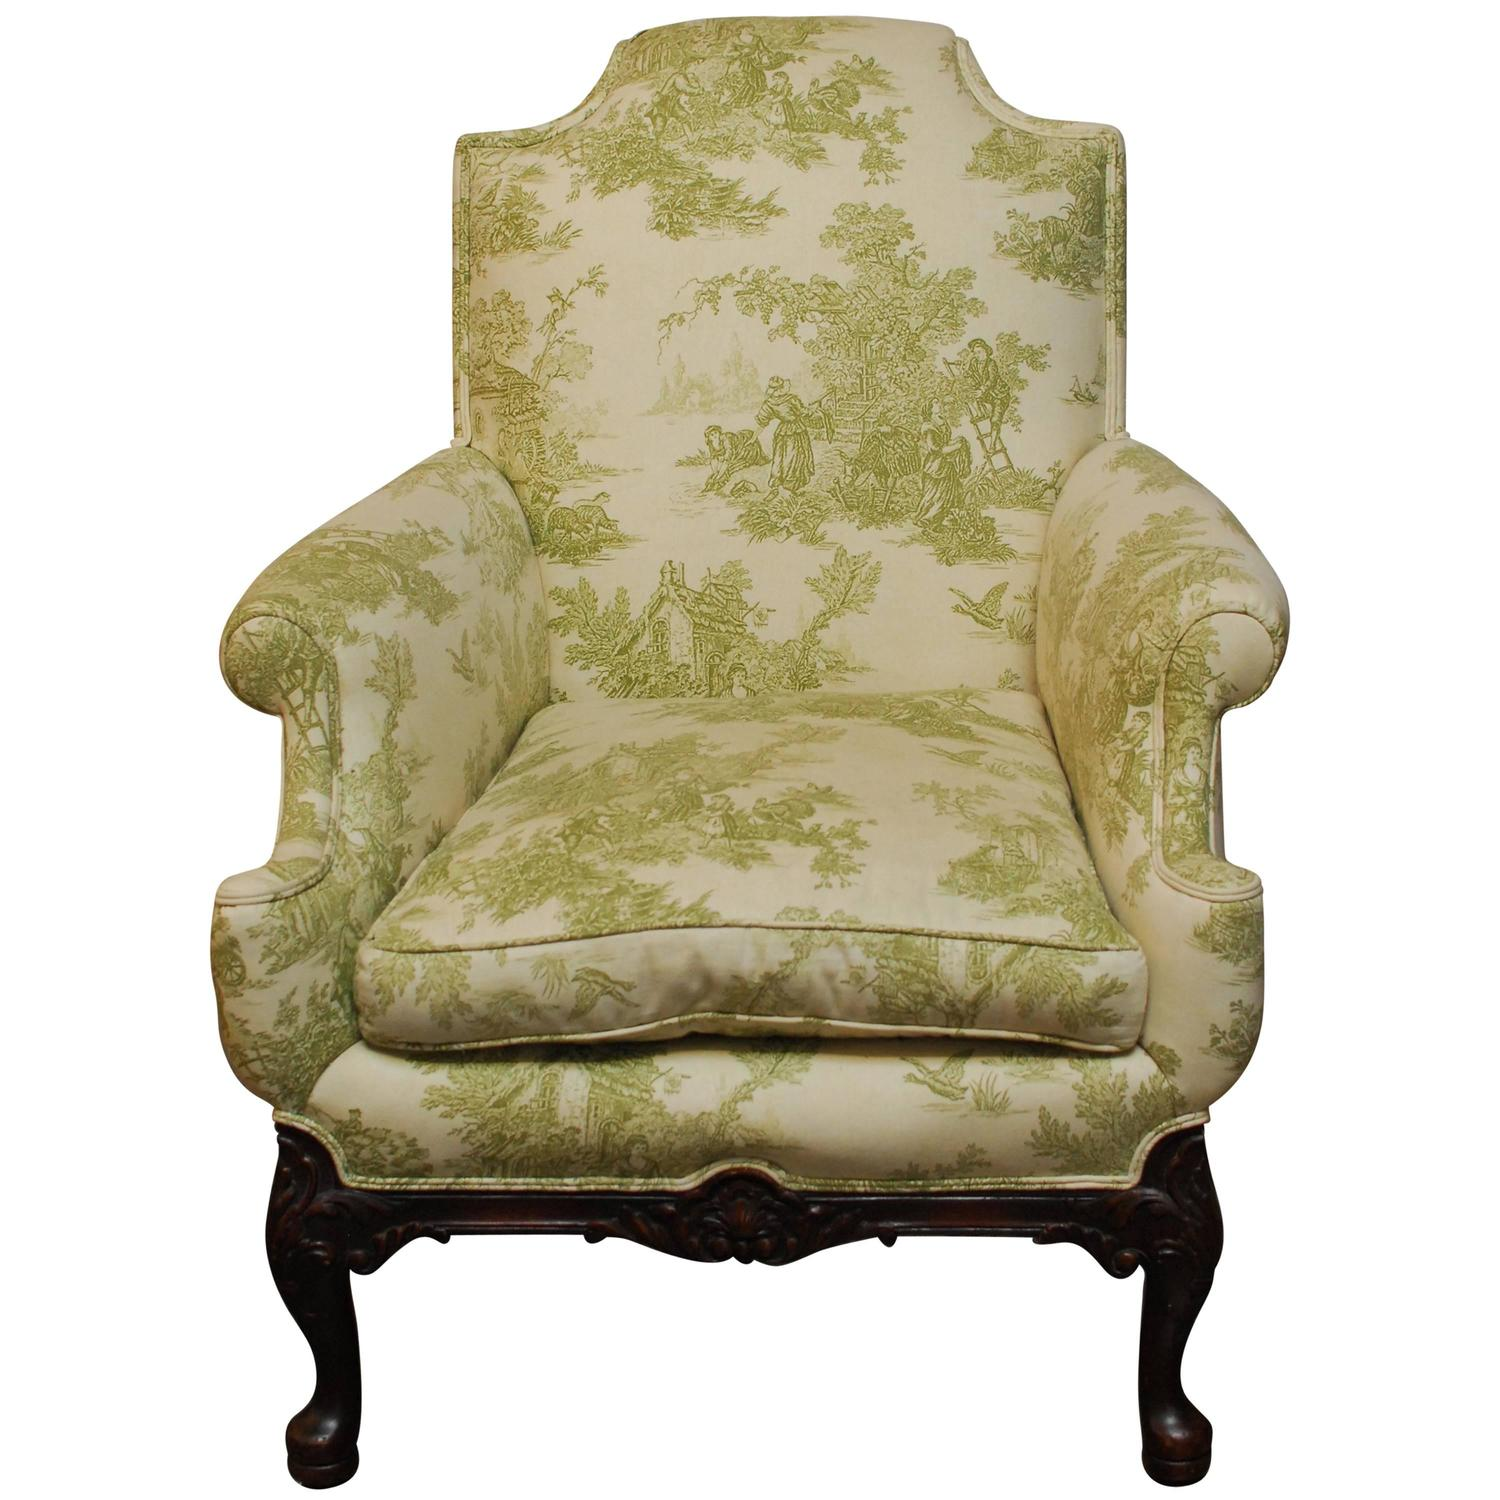 Toile Chair Louis Xvi Toile De Jouy Bergere For Sale At 1stdibs